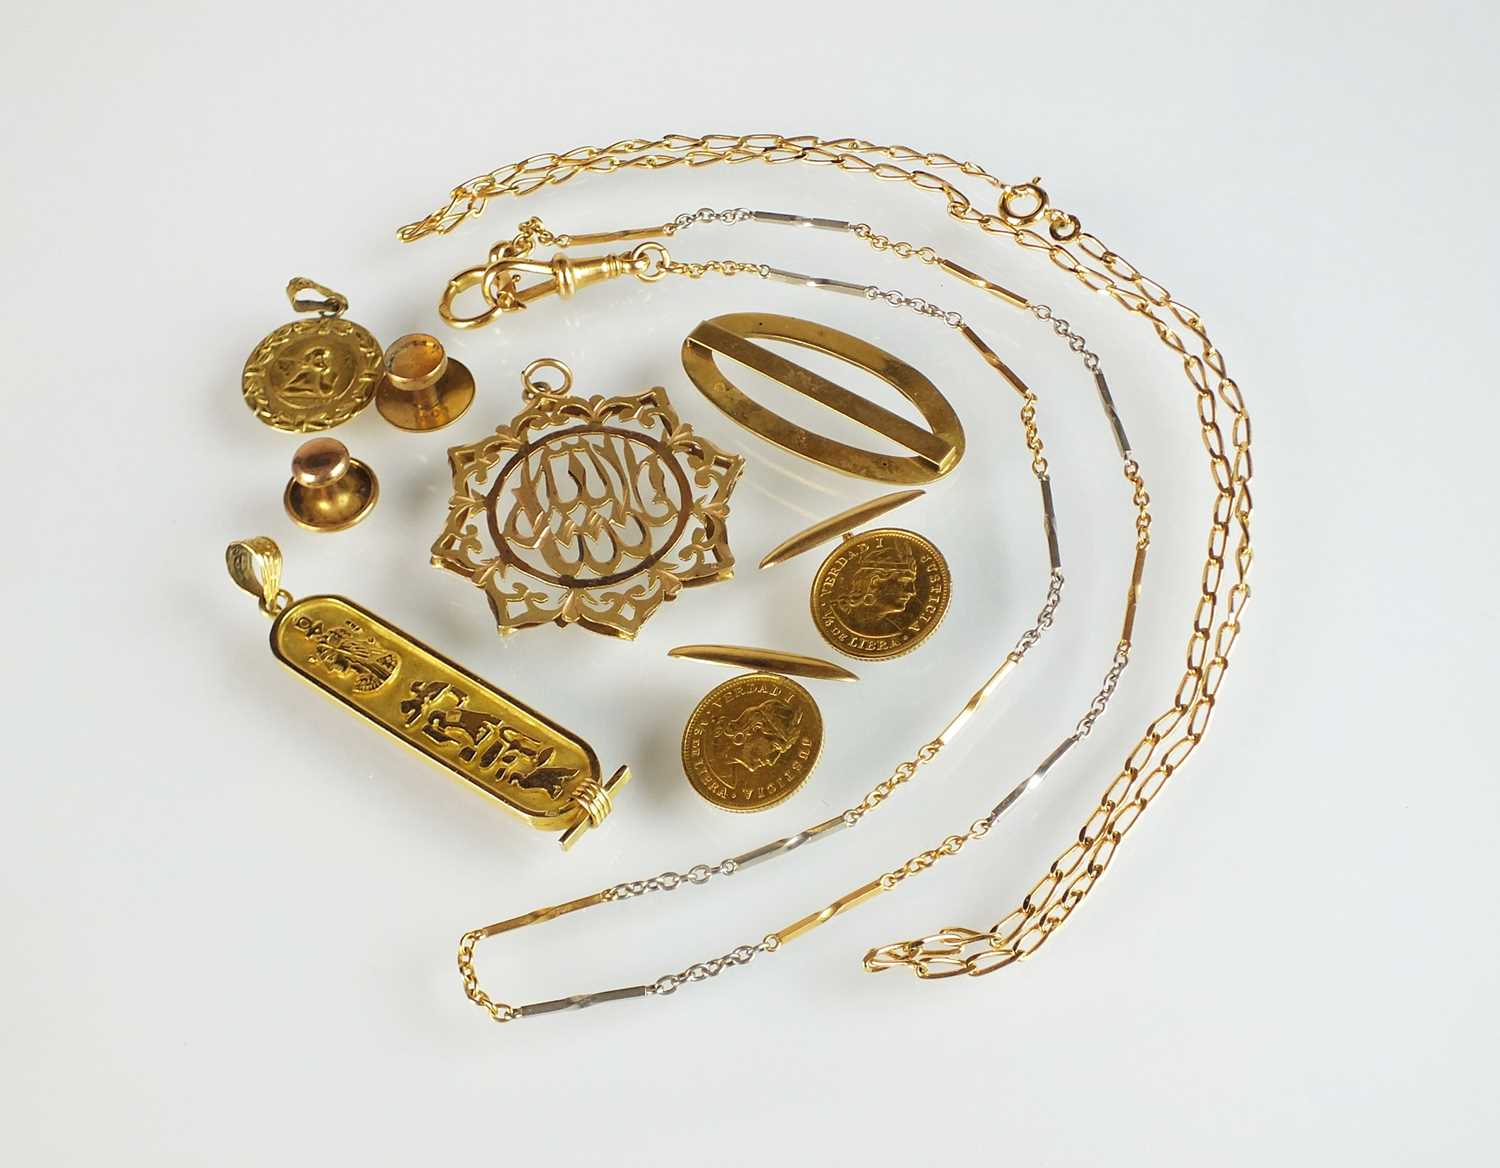 A yellow and white metal chain